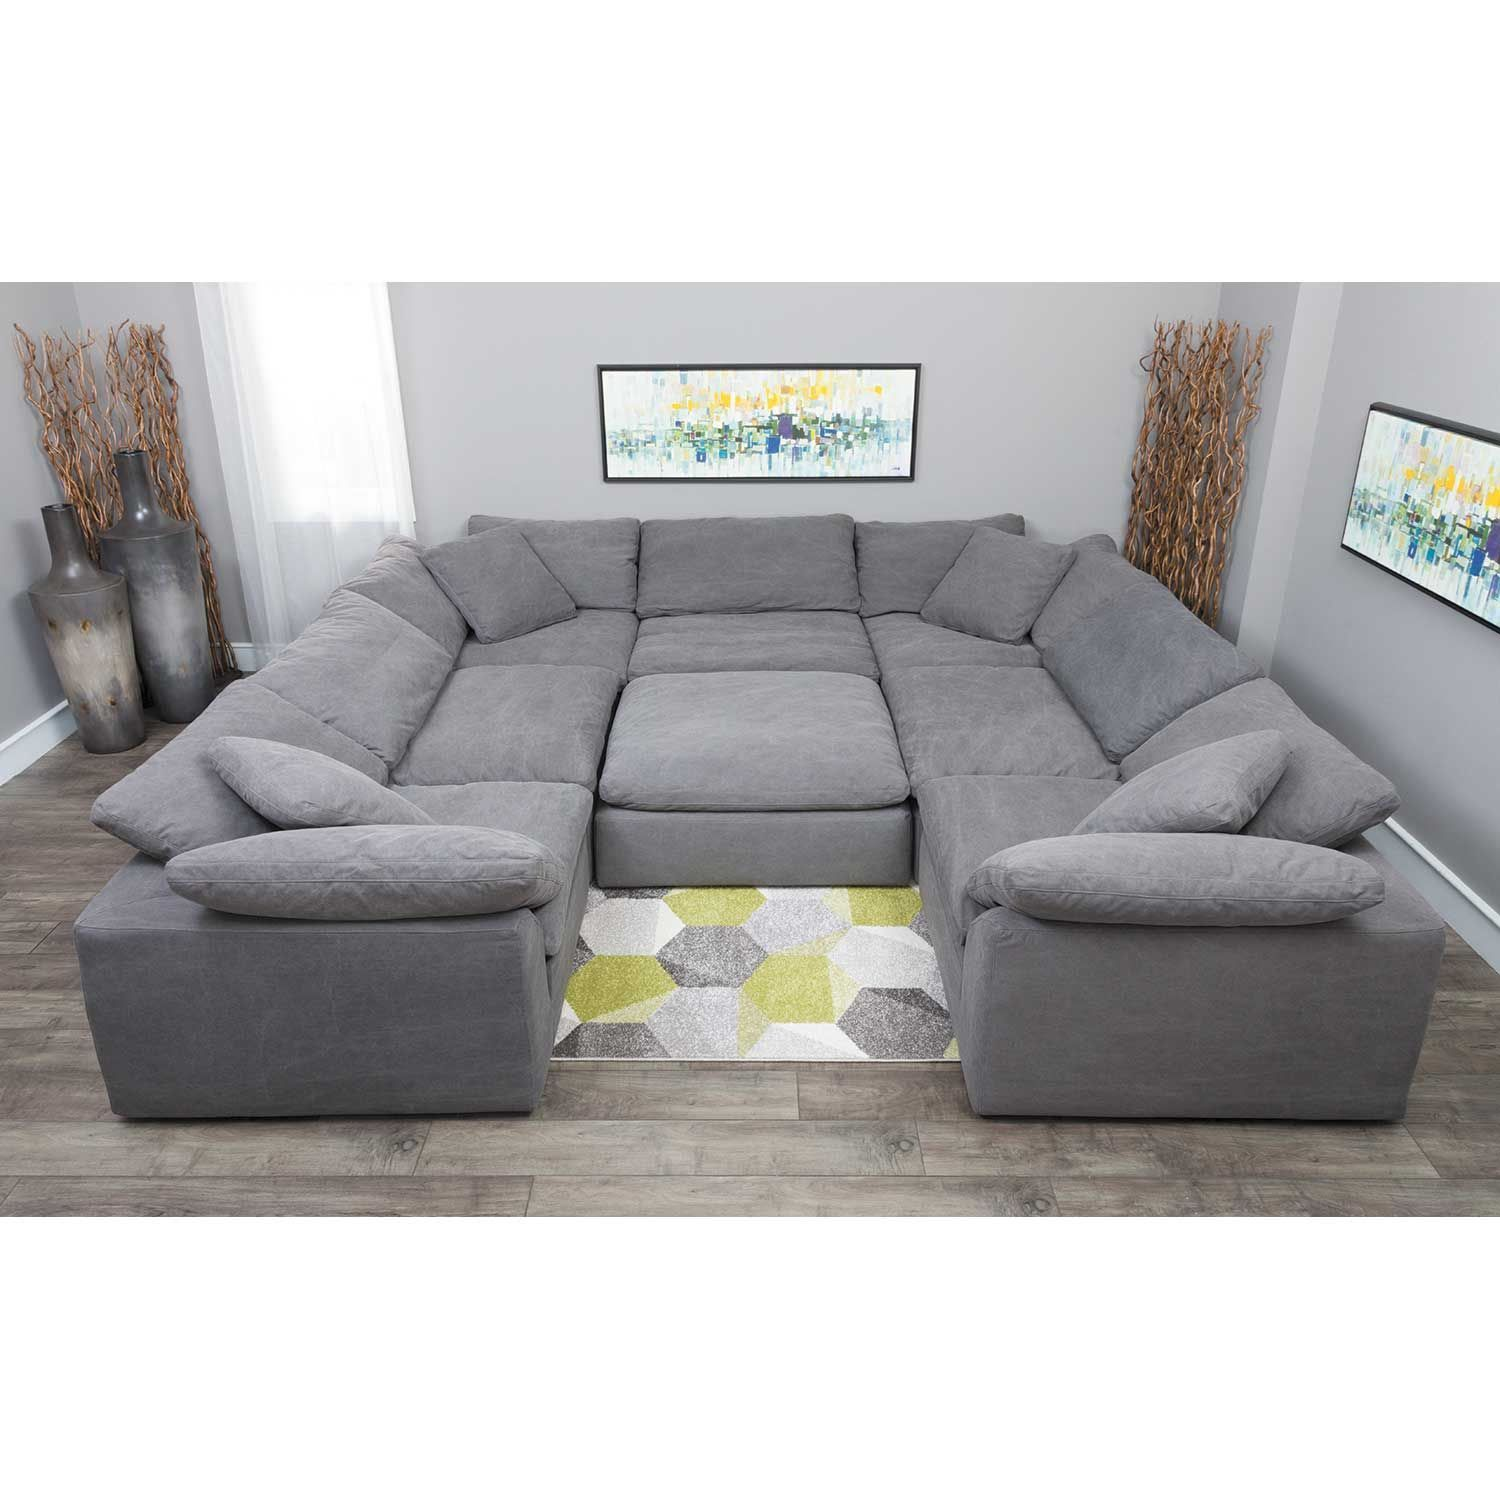 The Best Synergy Home Furnishings 4 Piece Modular